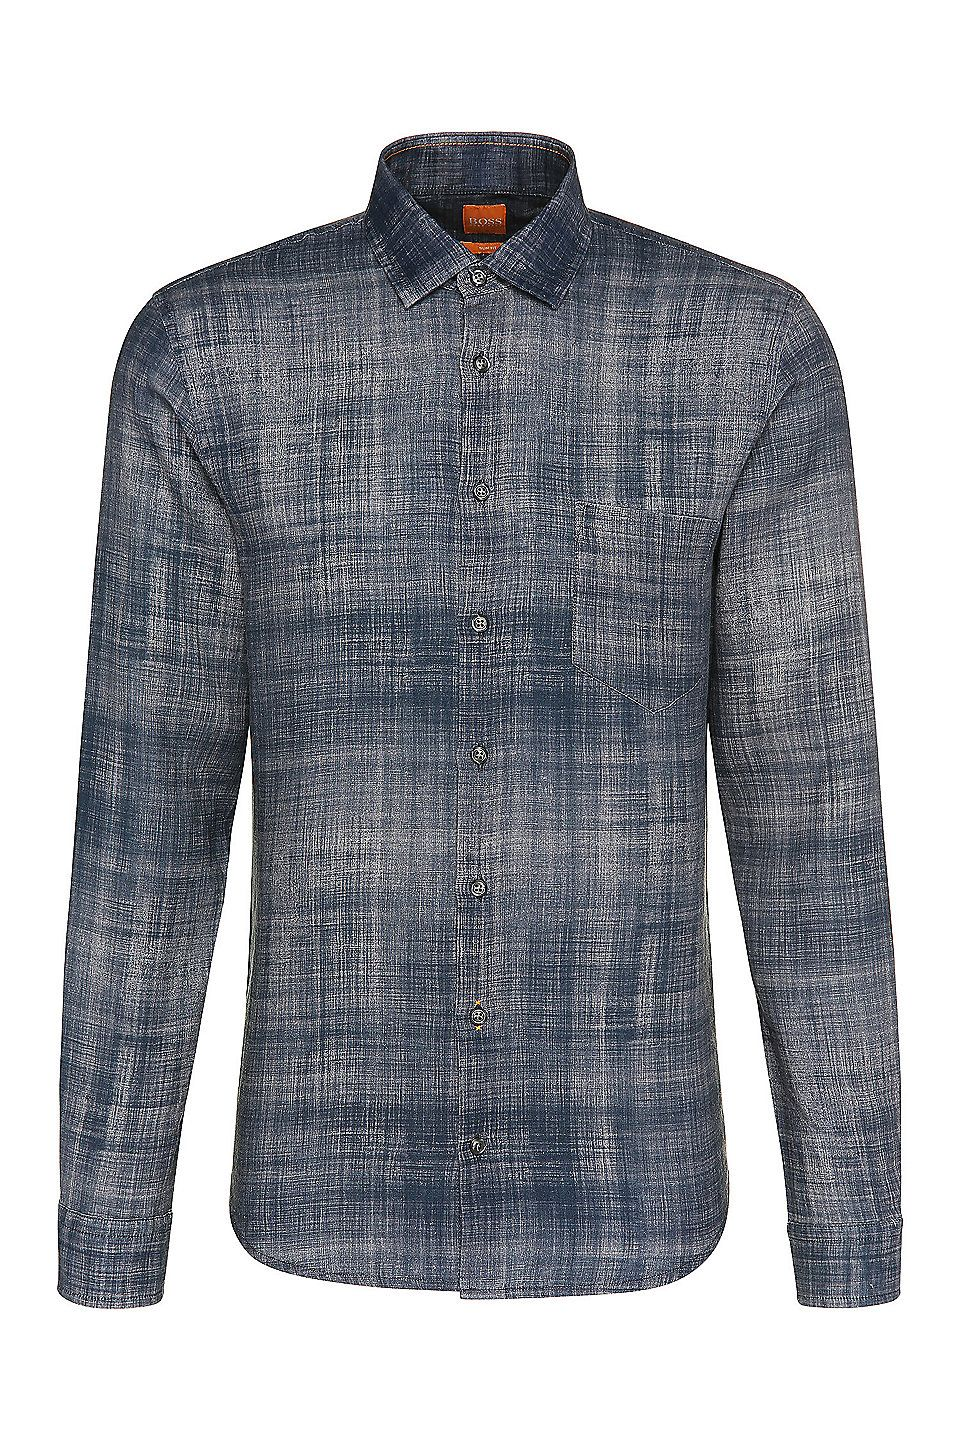 2fe84874d4f2 Printed slim-fit shirt in linen   Epop  Dark Blue from BOSS Orange for Men  for £105.00 in the official HUGO BOSS Online Store free shipping